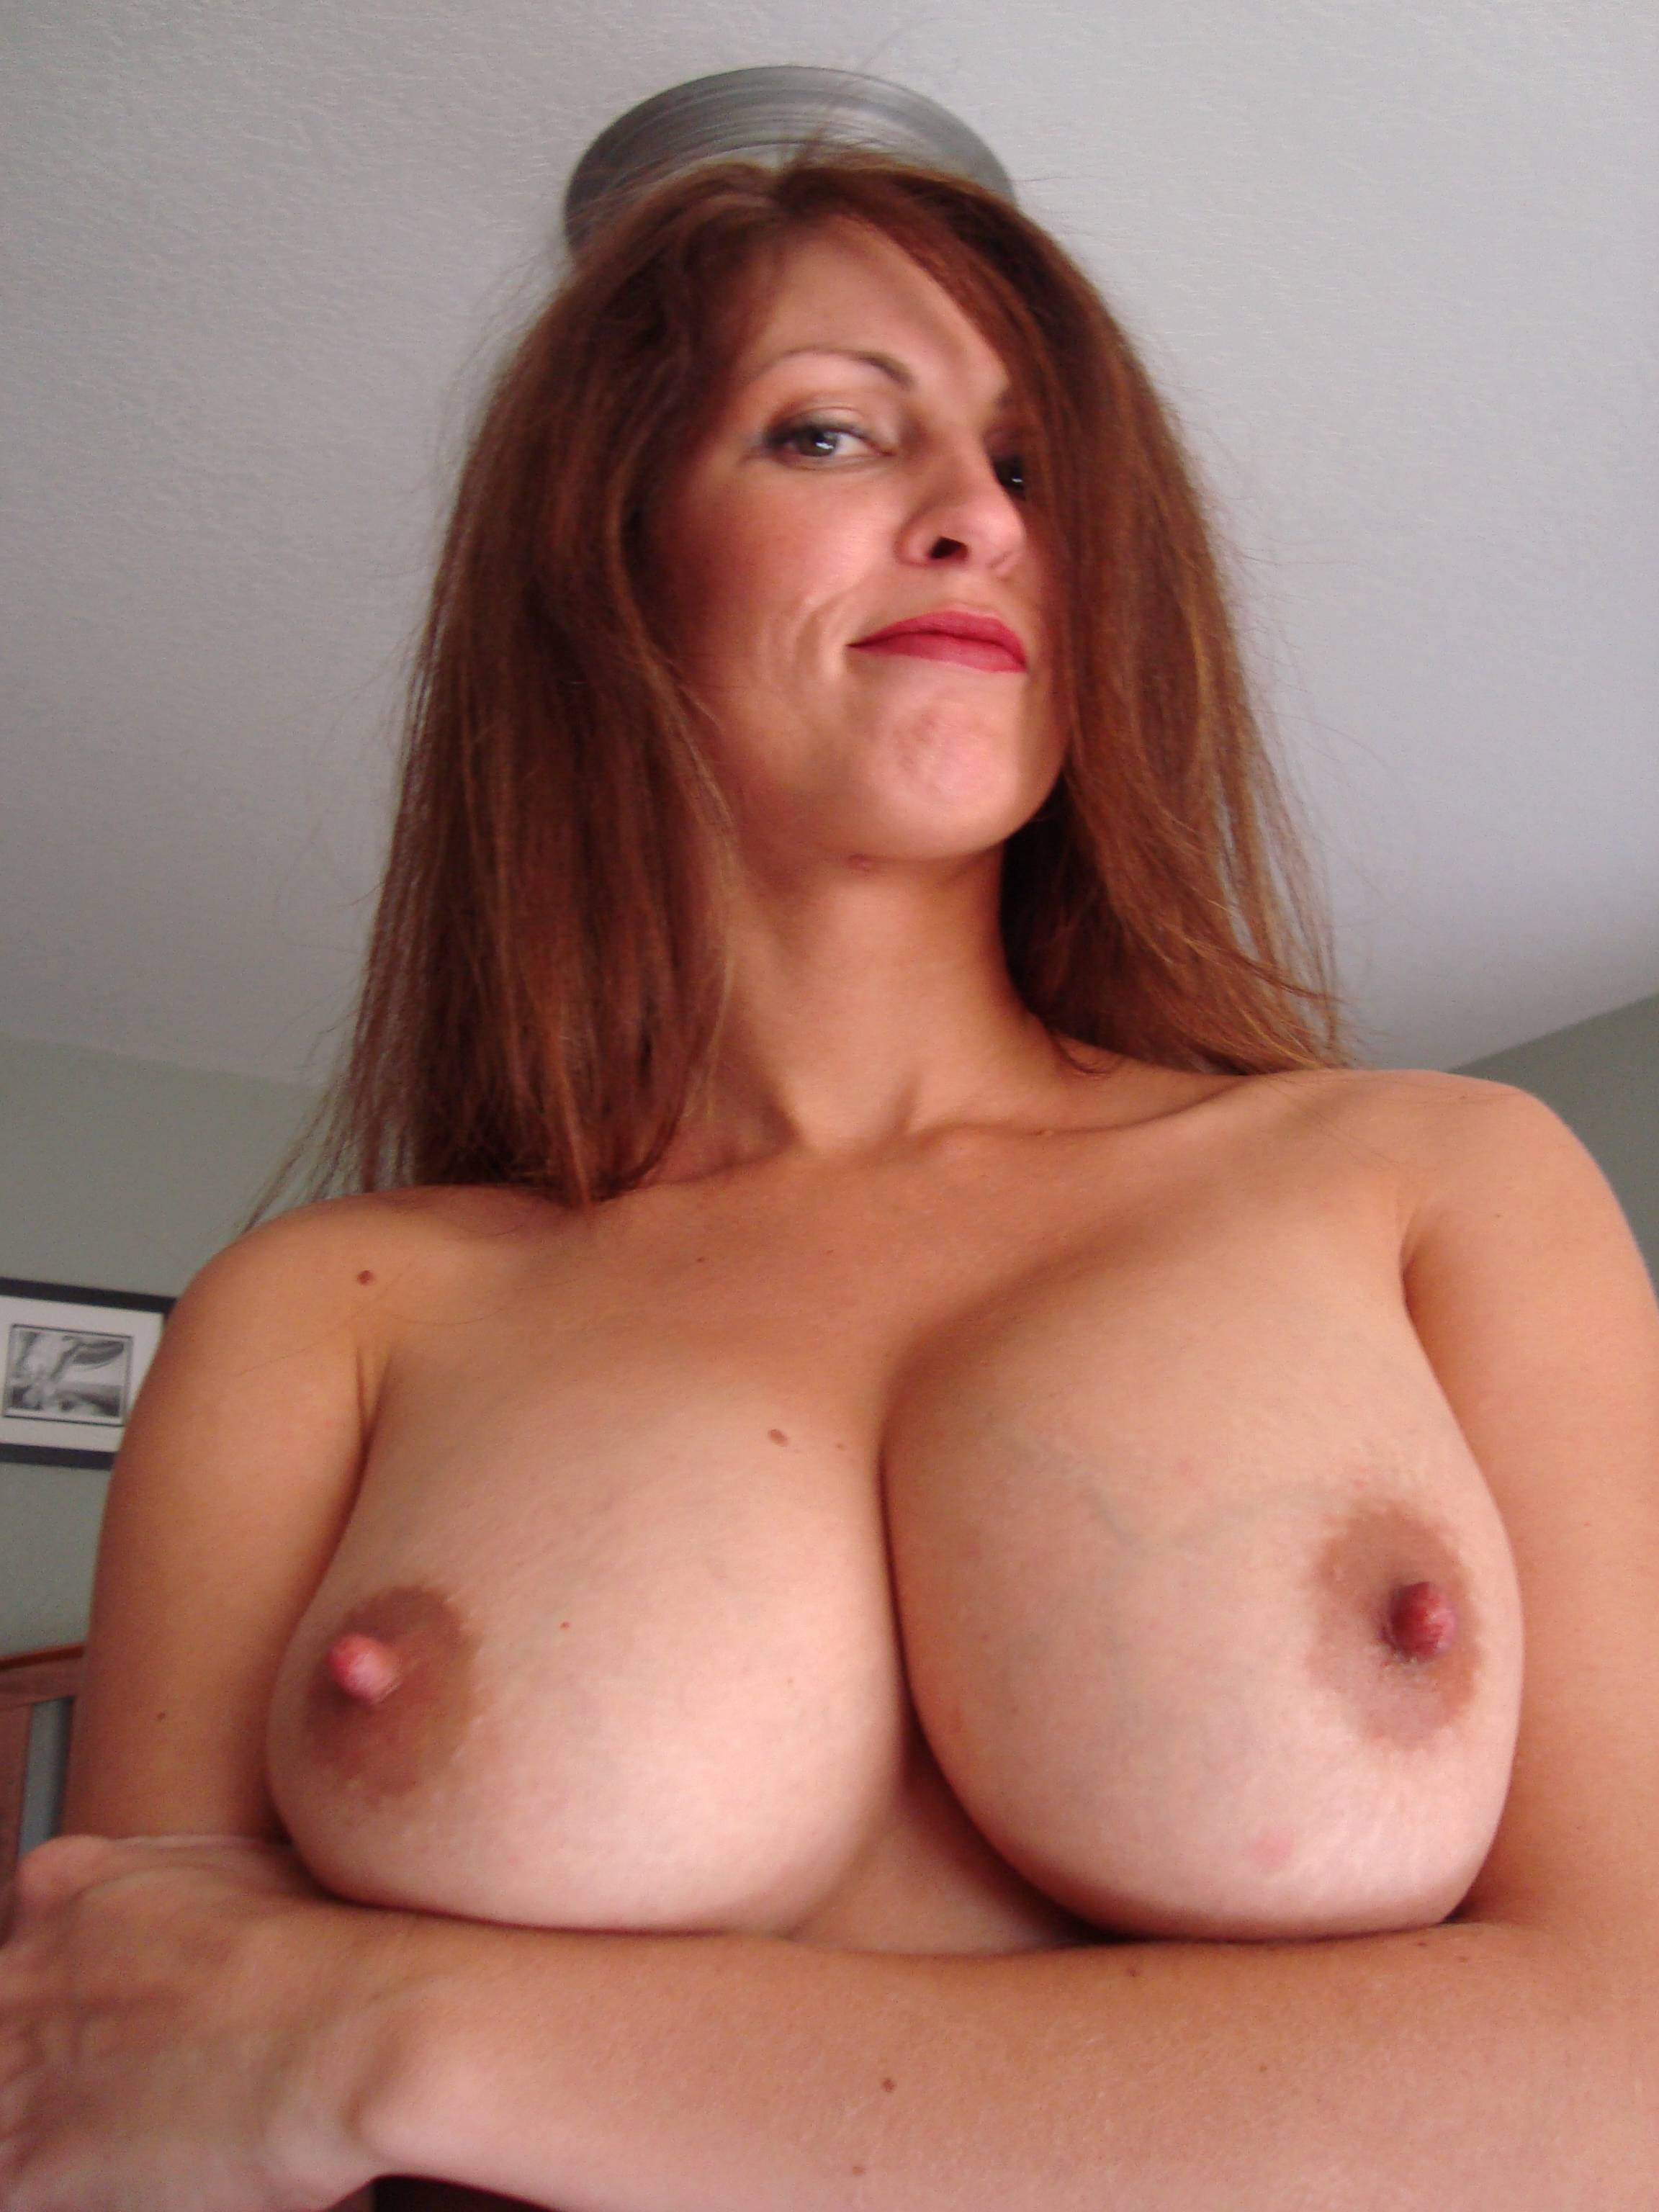 Massive Tits Webcam Natural